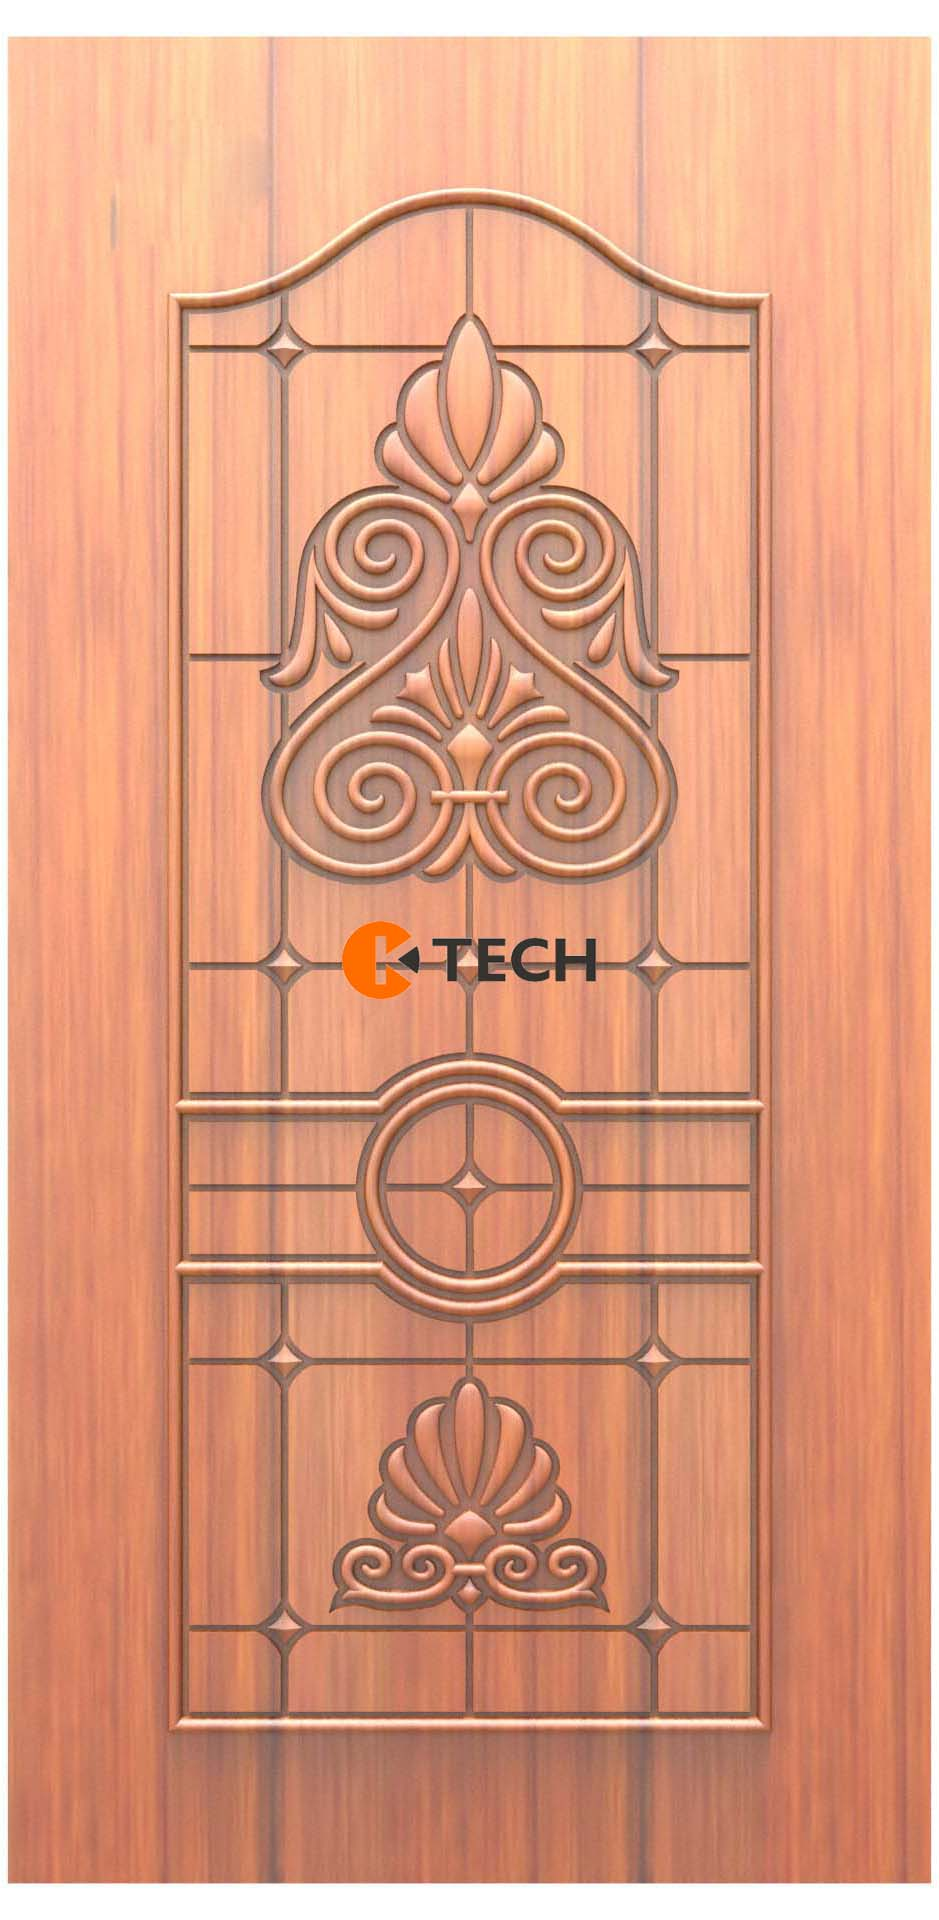 K-TECH CNC Doors Design 178